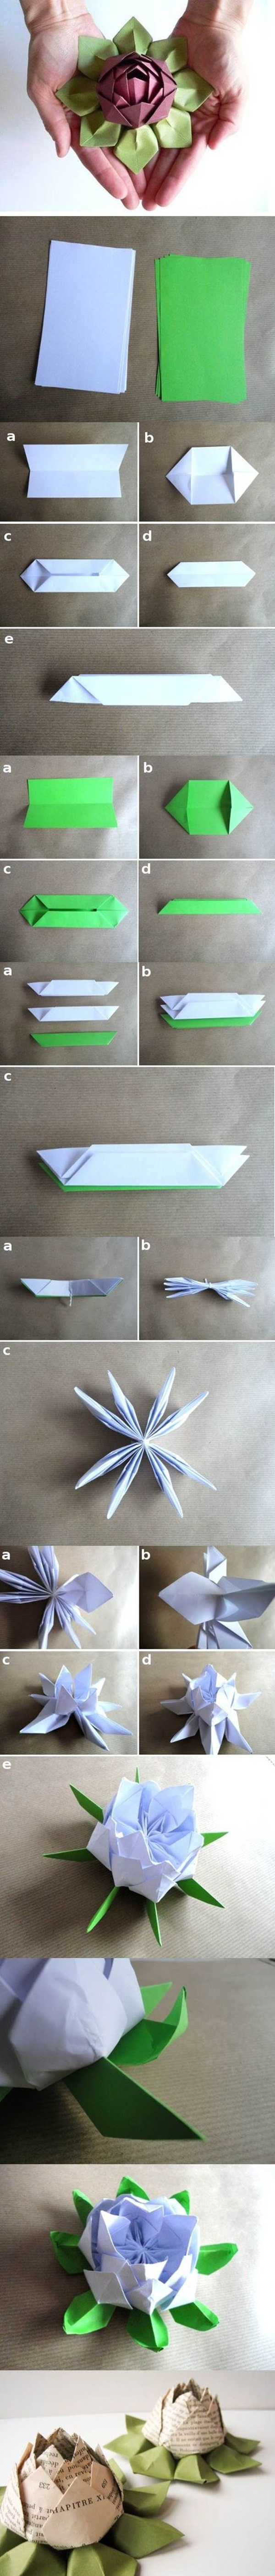 easy-origami-for-kids8